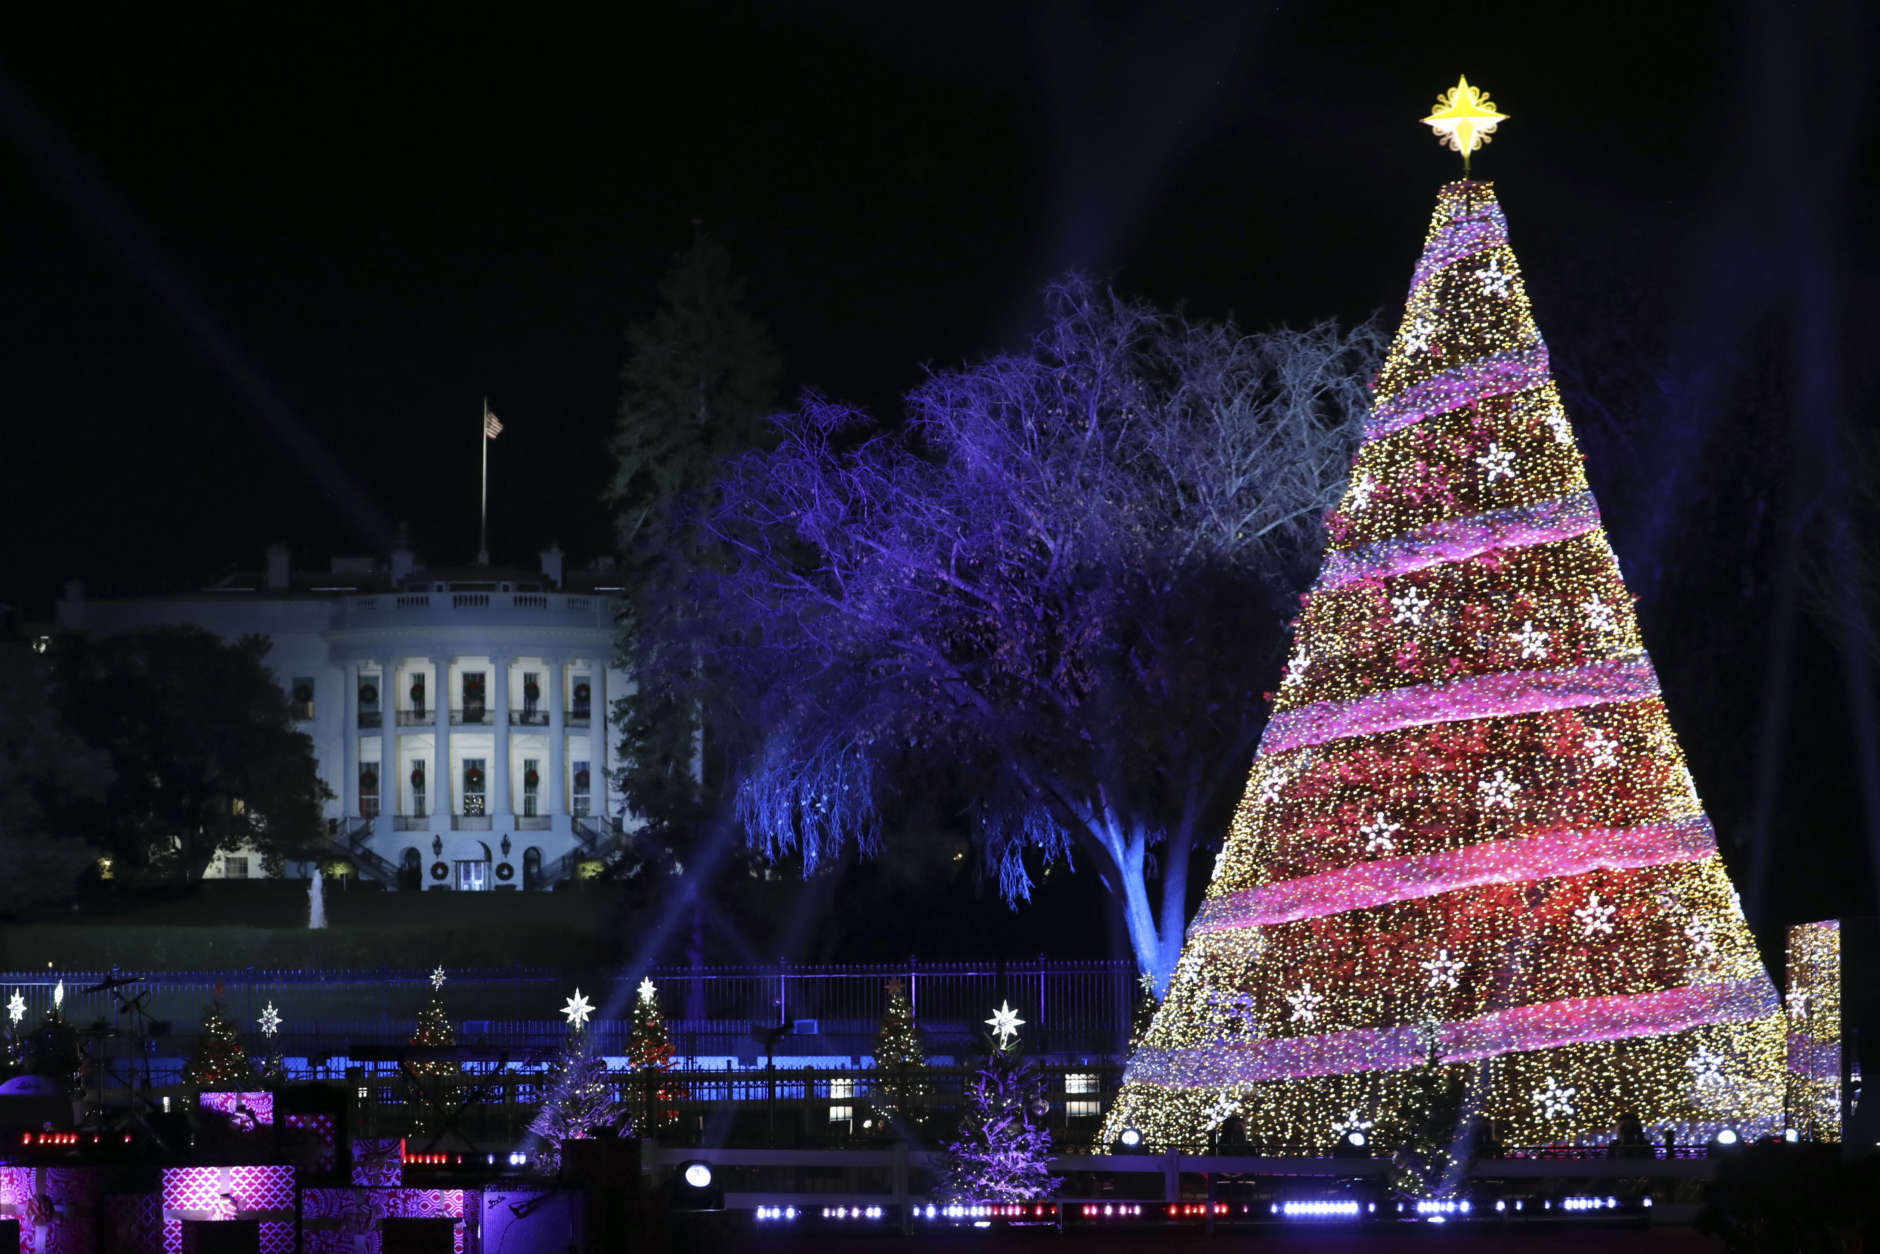 In this file photo, the 2017 National Christmas Tree is seen lit on the Ellipse with the White House in the background Thursday, Nov. 30, 2017, in Washington. (AP Photo/Andrew Harnik)